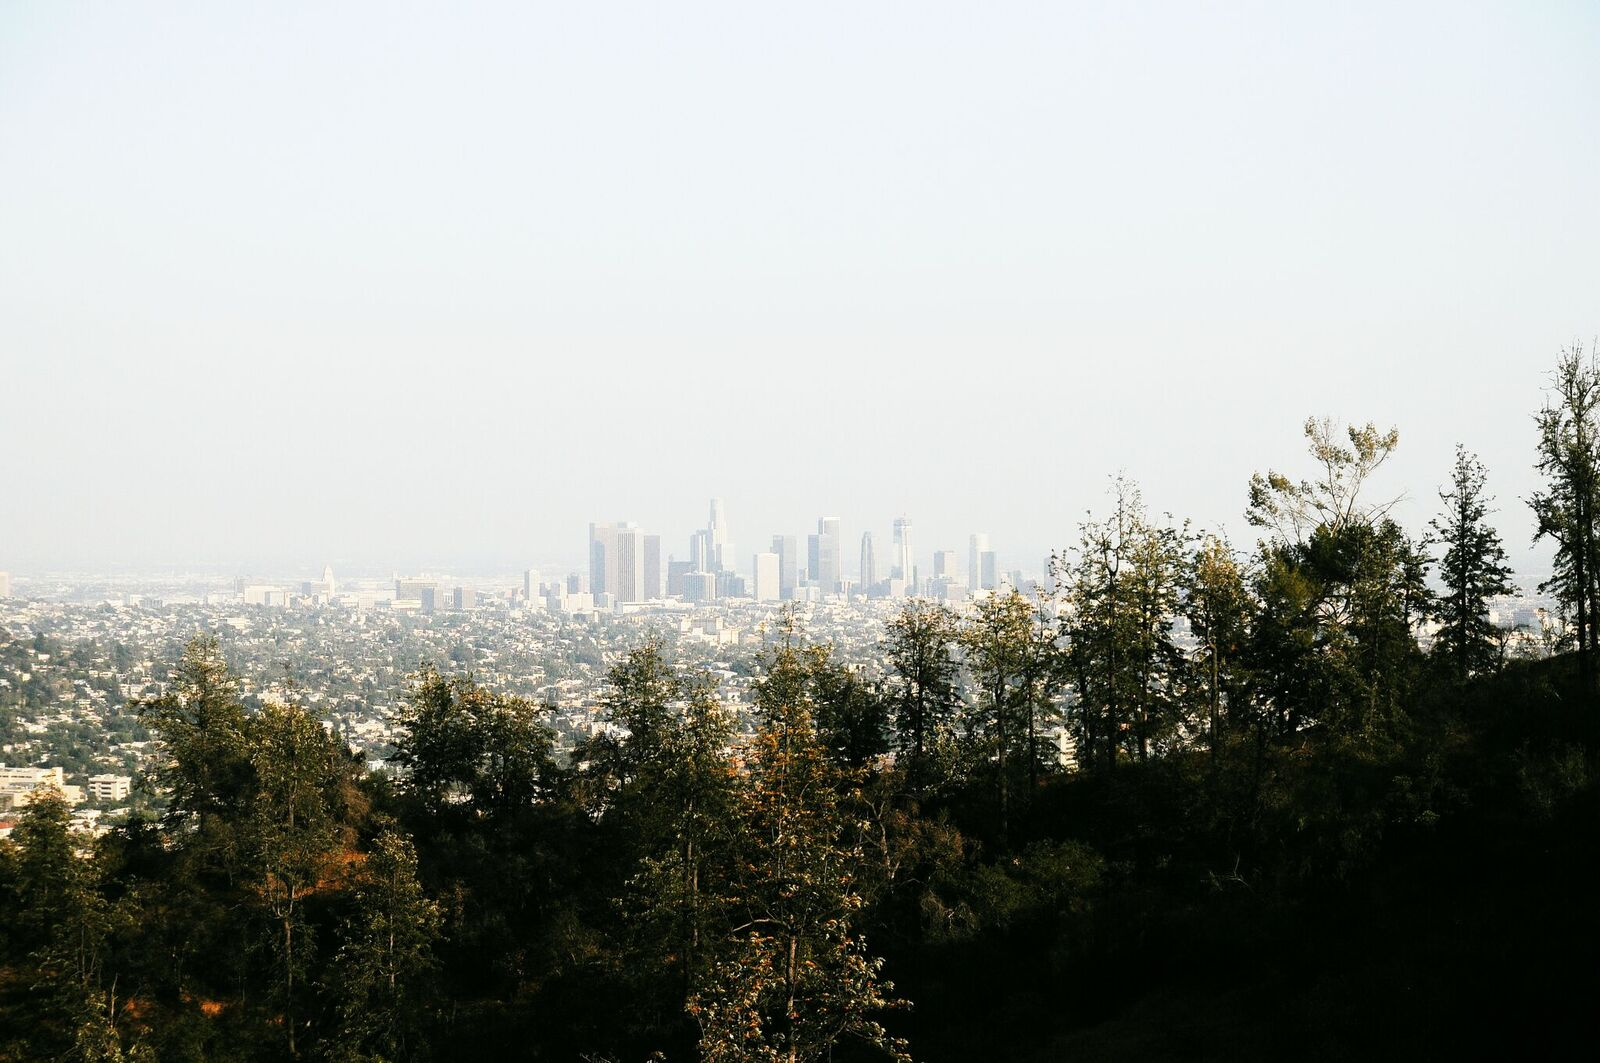 Image of 5 Things Every True Angeleno Knows